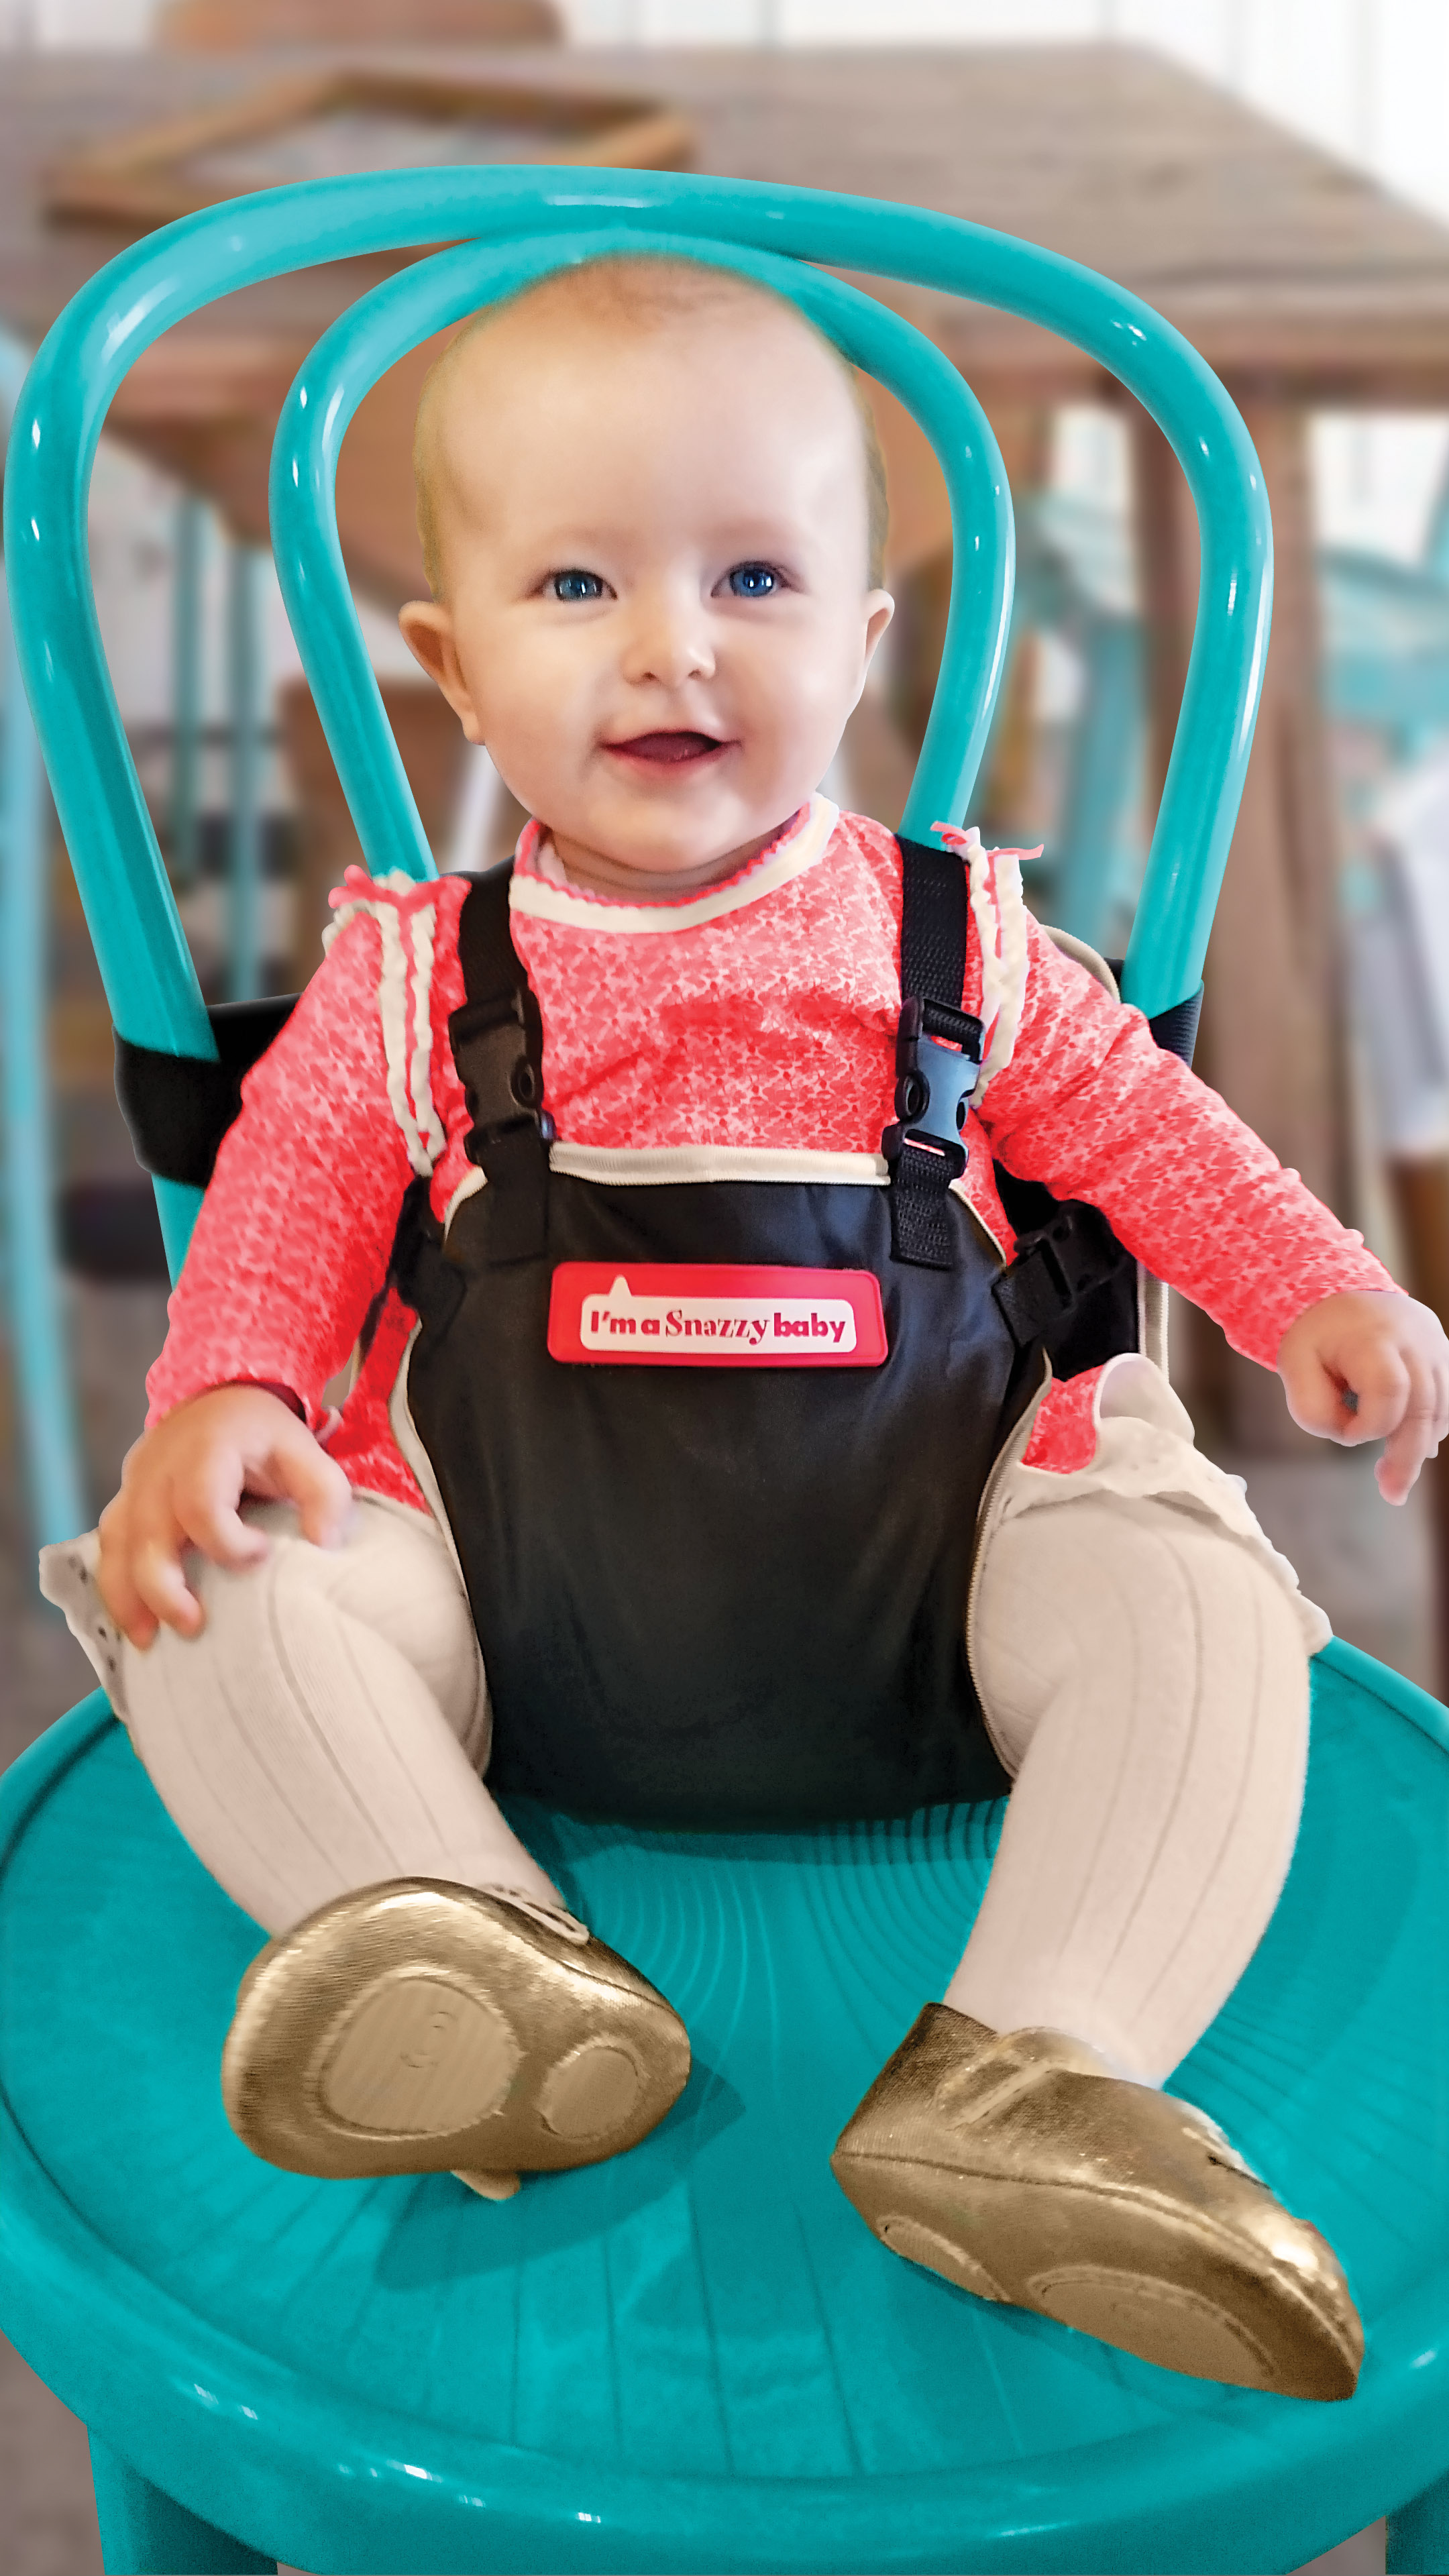 award winning my baby's own deluxe travel chair - snazzy baby